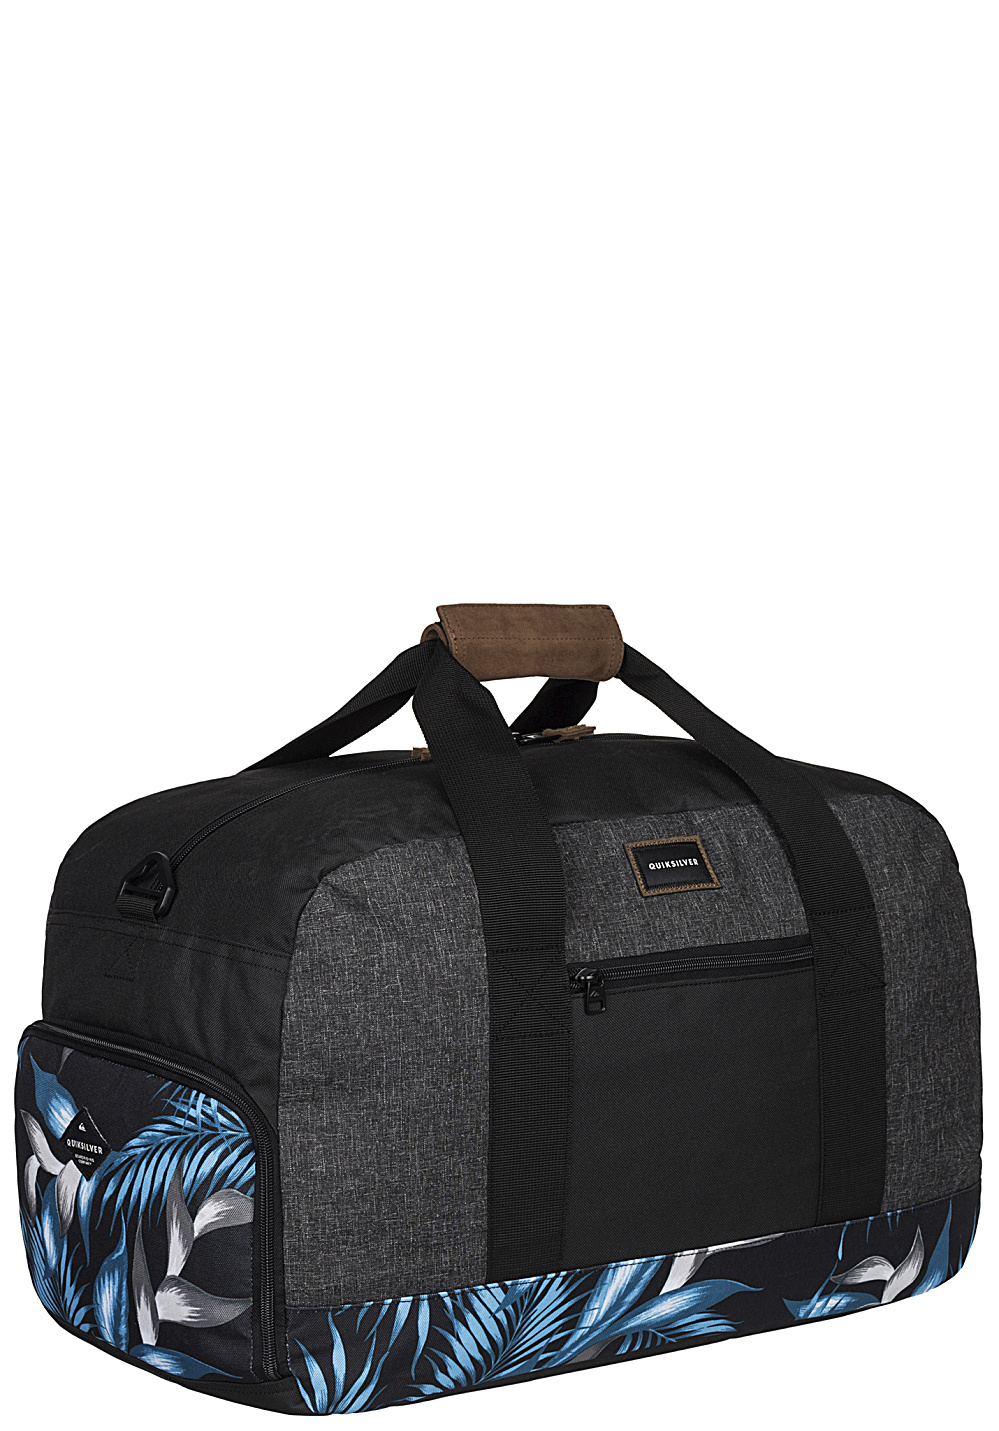 Next. This product is currently out of stock. Quiksilver. Medium Shelter - Gym  Bag ... f25f0155c1908